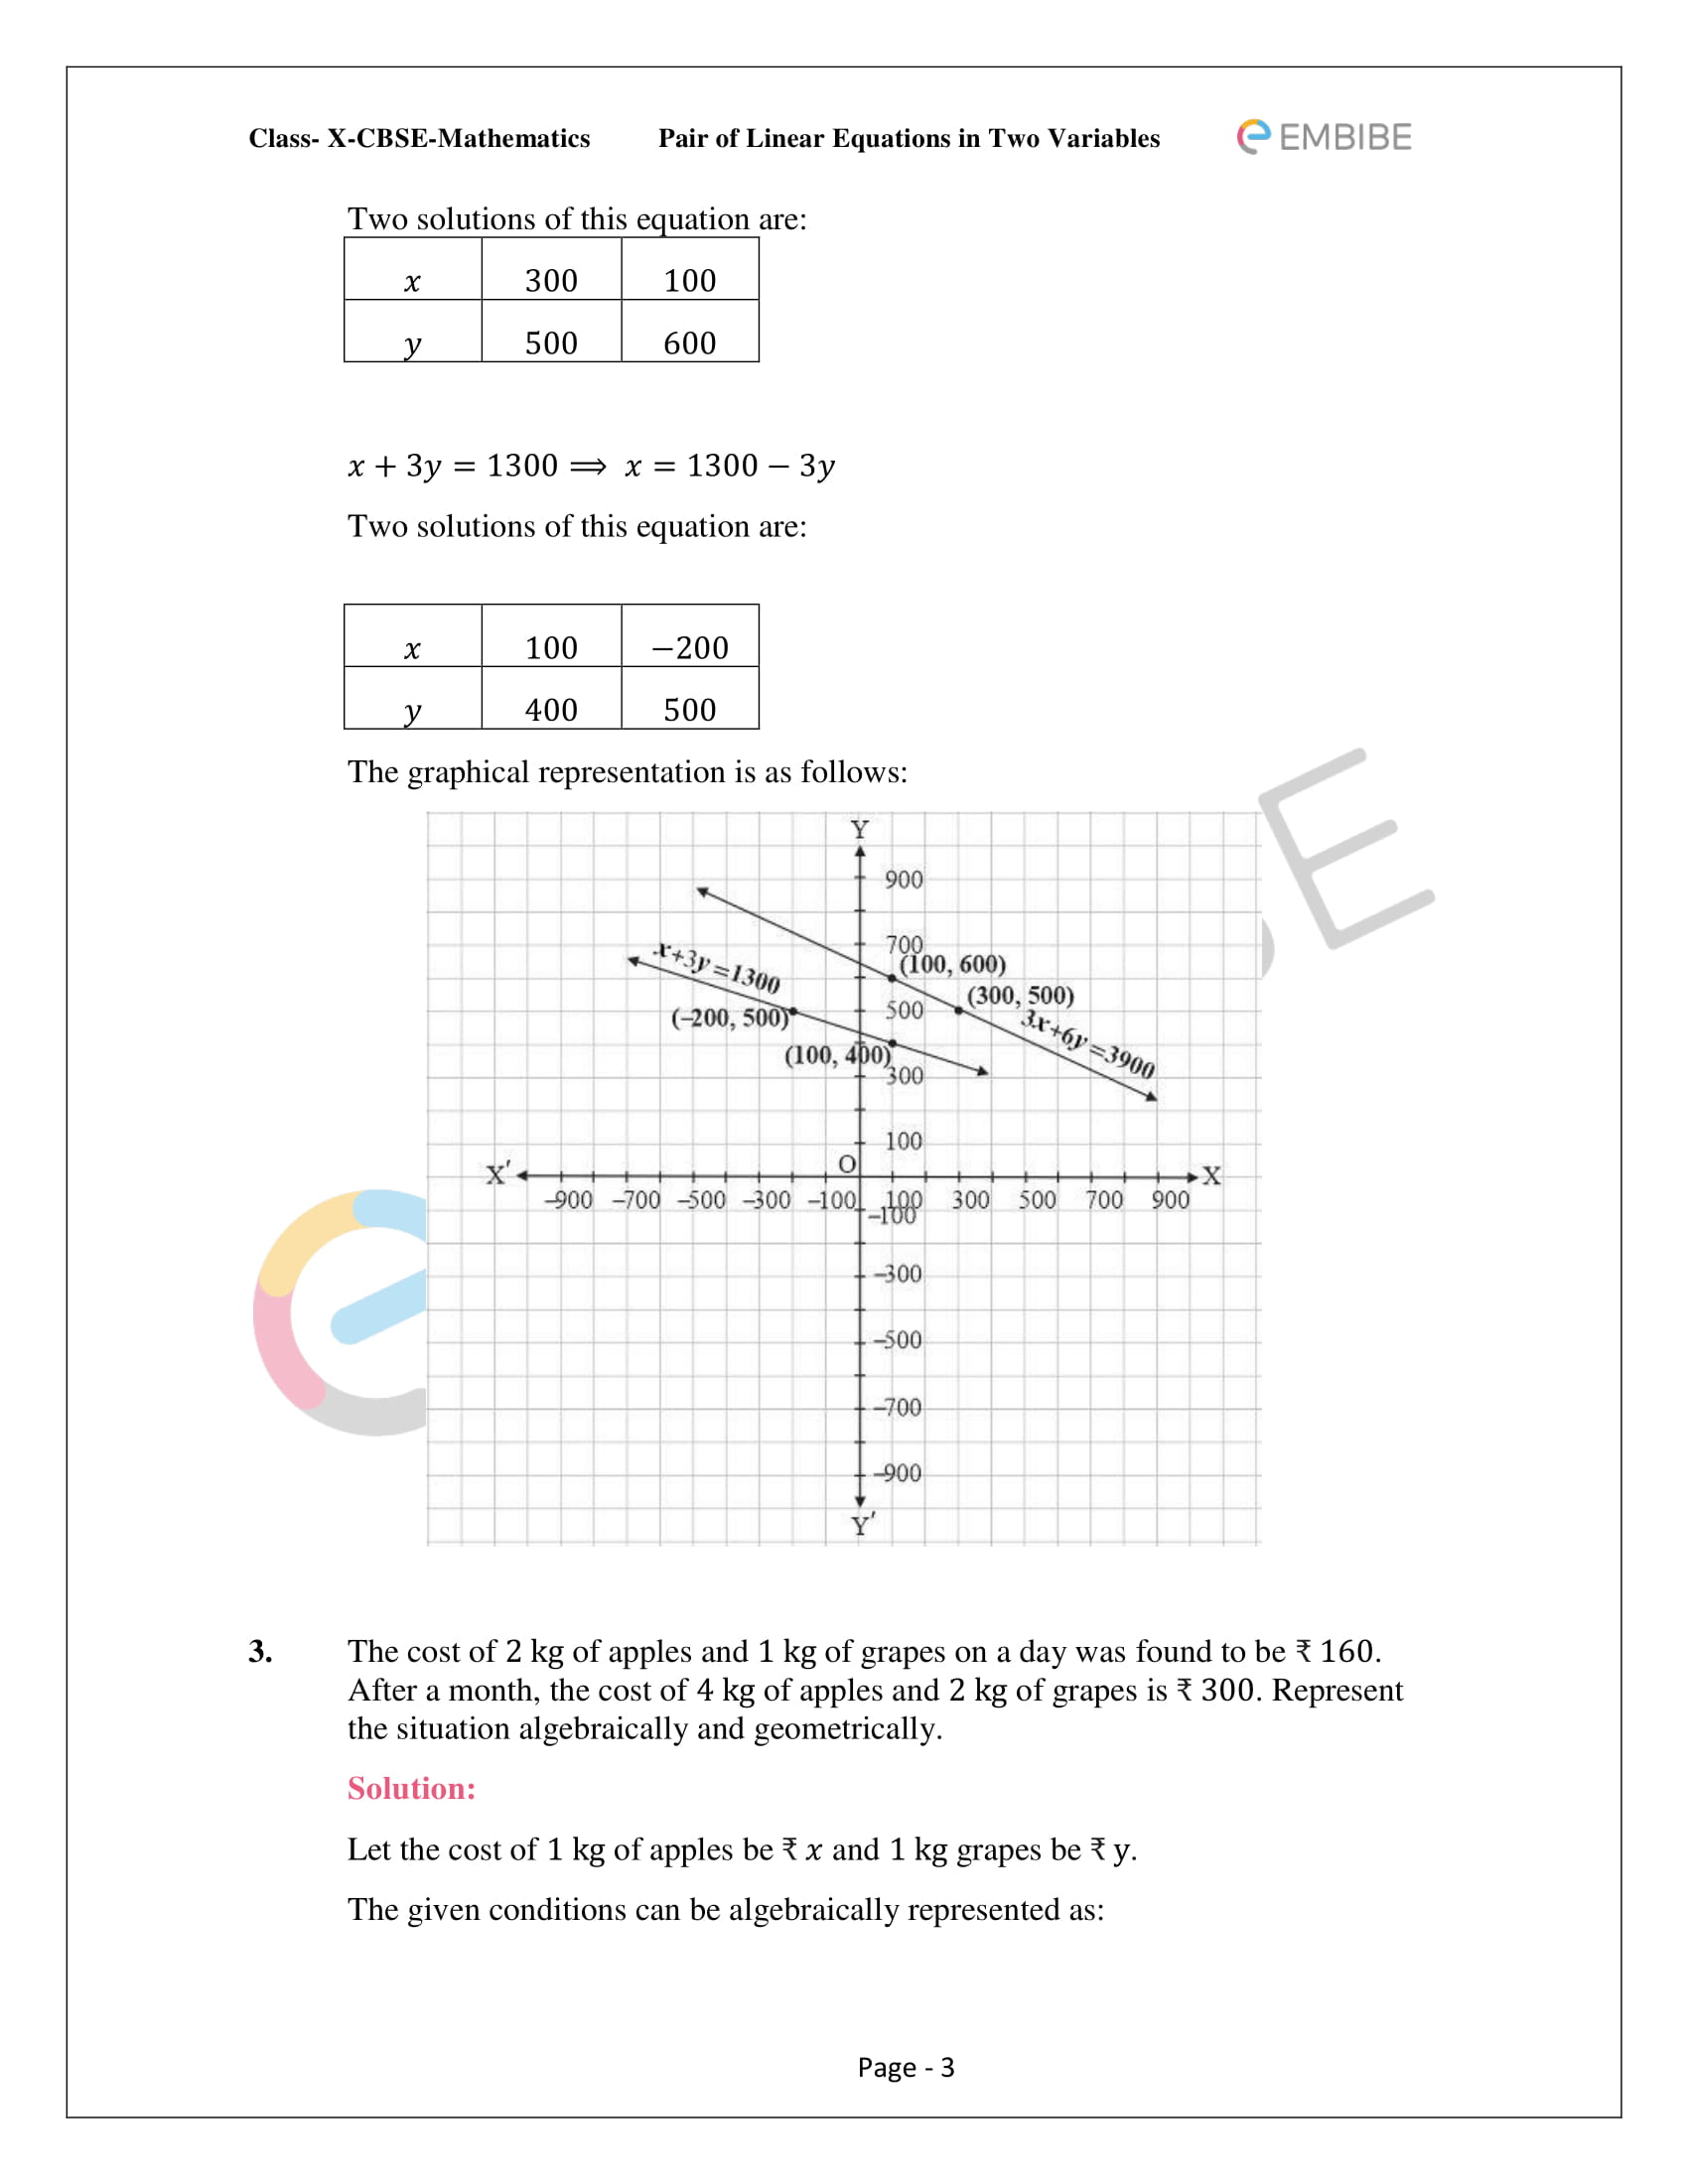 CBSE NCERT Solutions For Class 10 Maths Chapter 3 - Pair of Linear Equations In Two Variables - 3